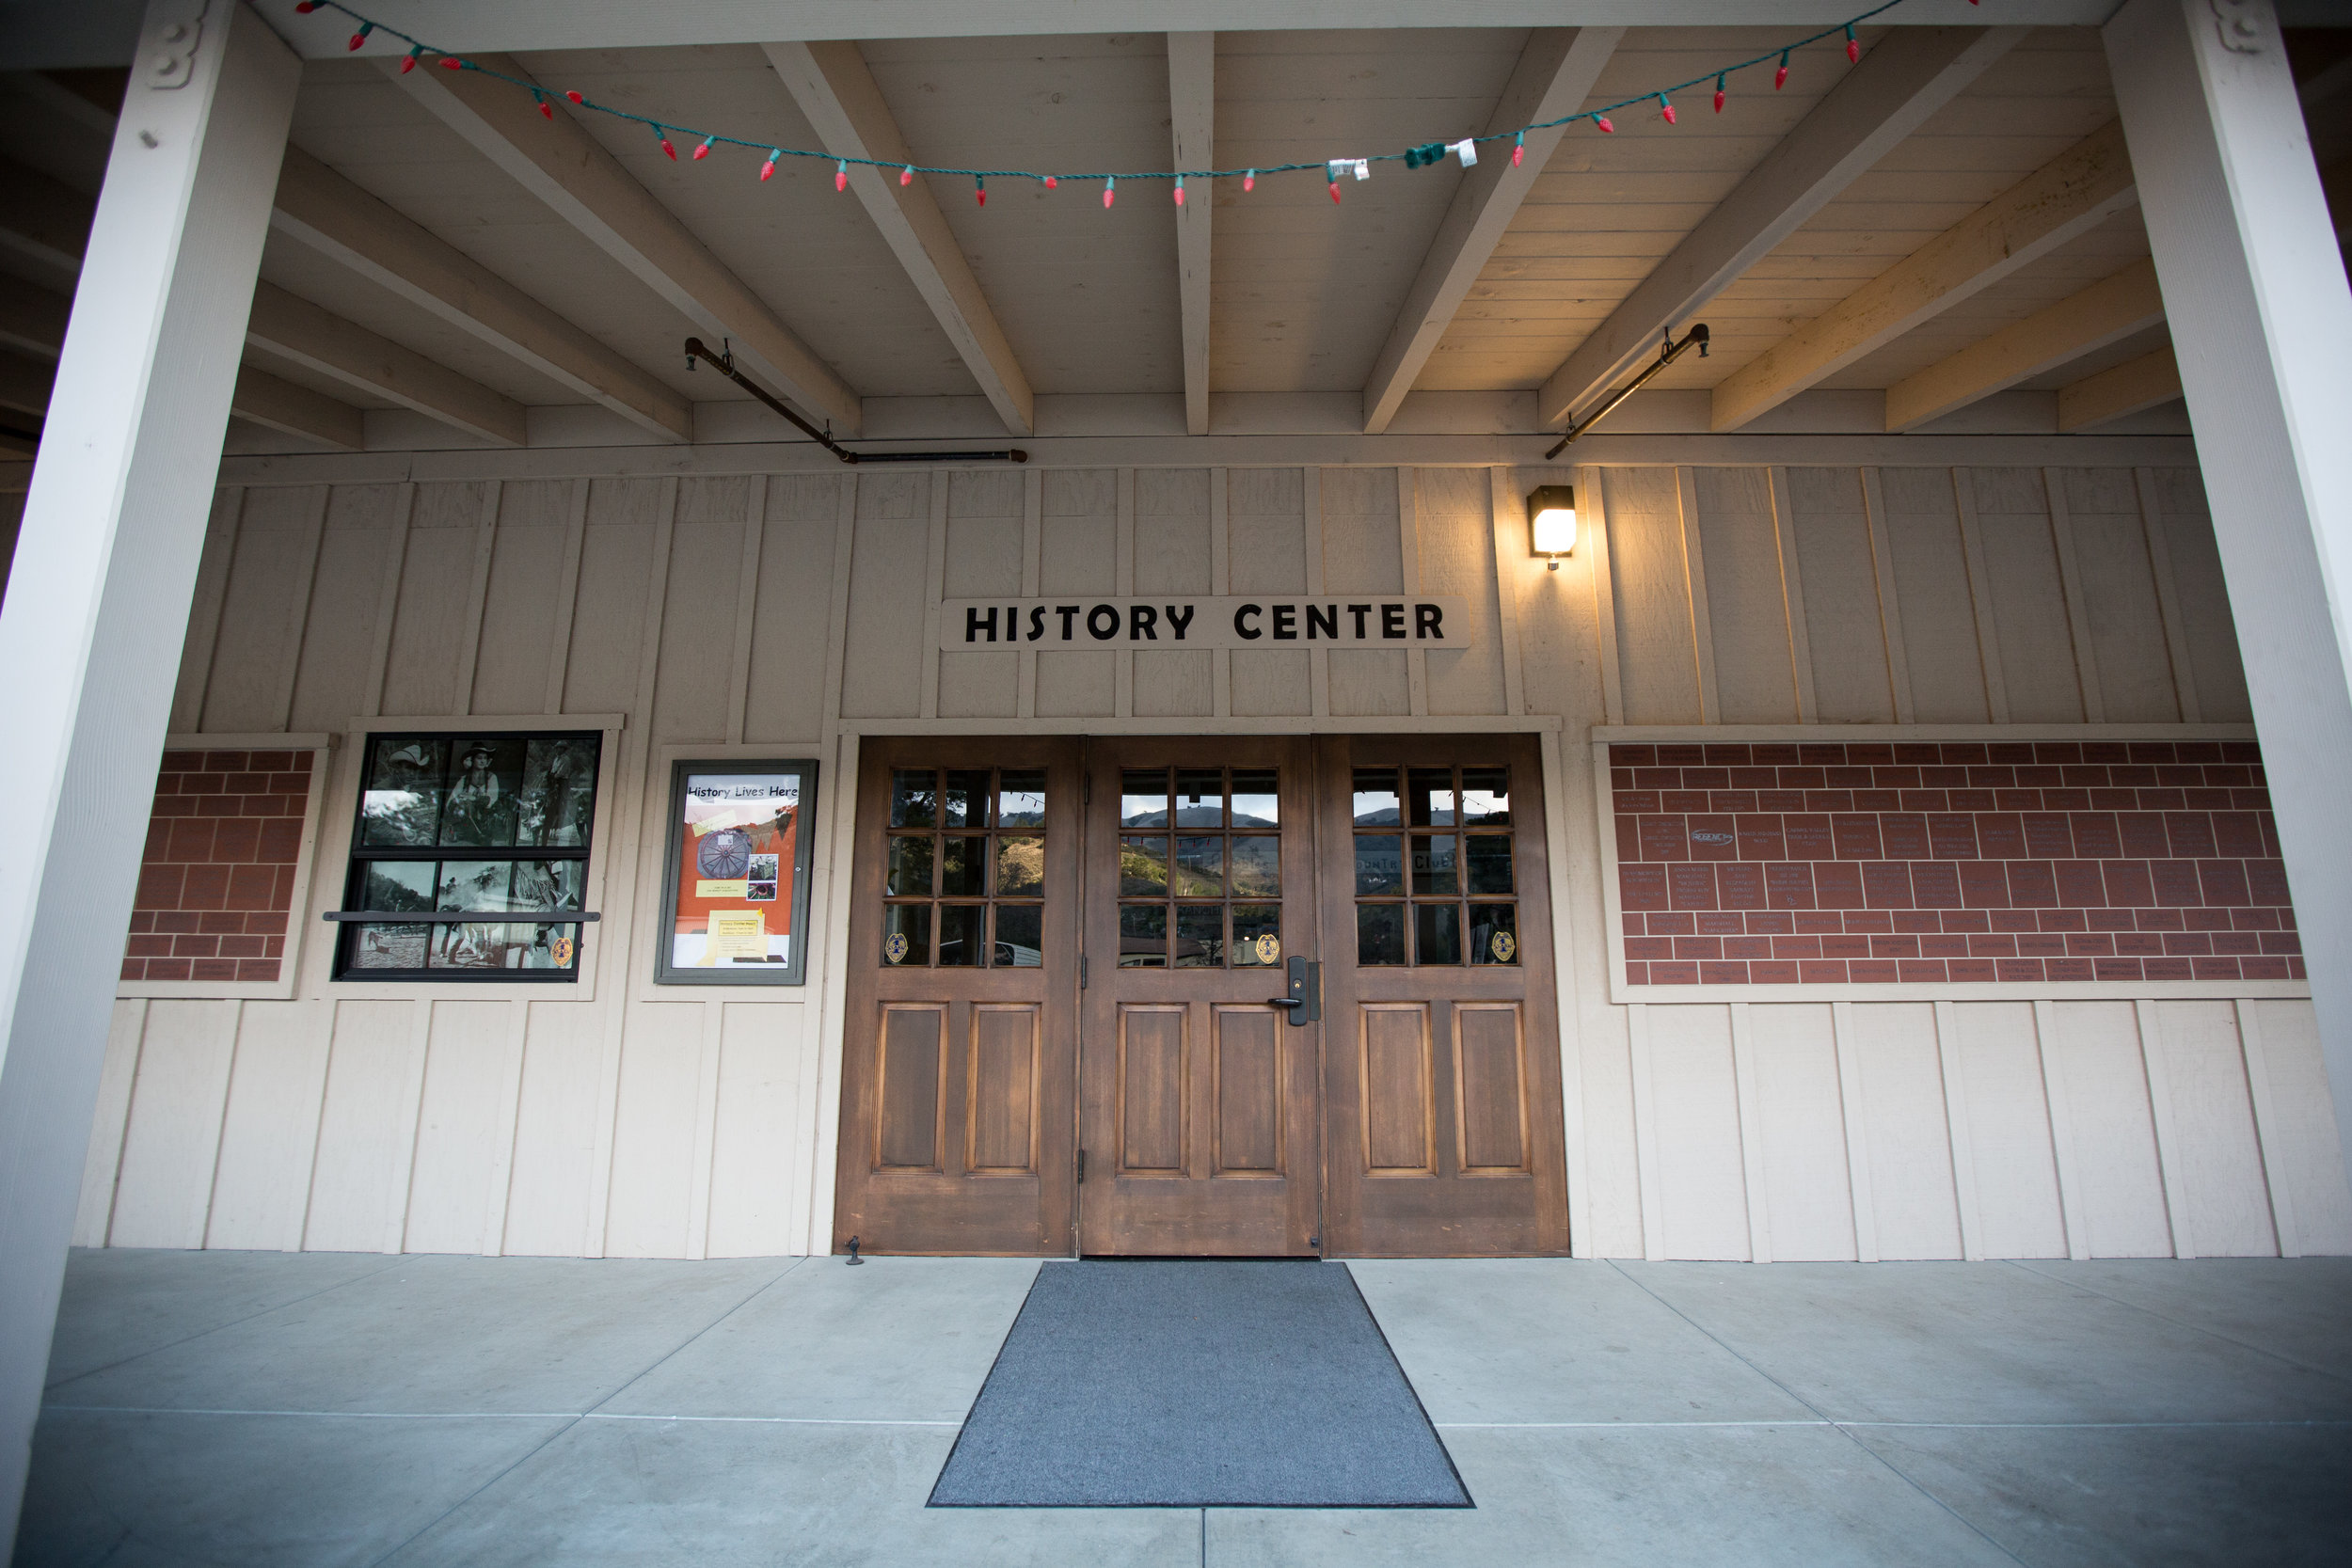 Carmel Valley History Center - Preserving and promoting the unique history and heritage of Carmel Valley for current and future generations.